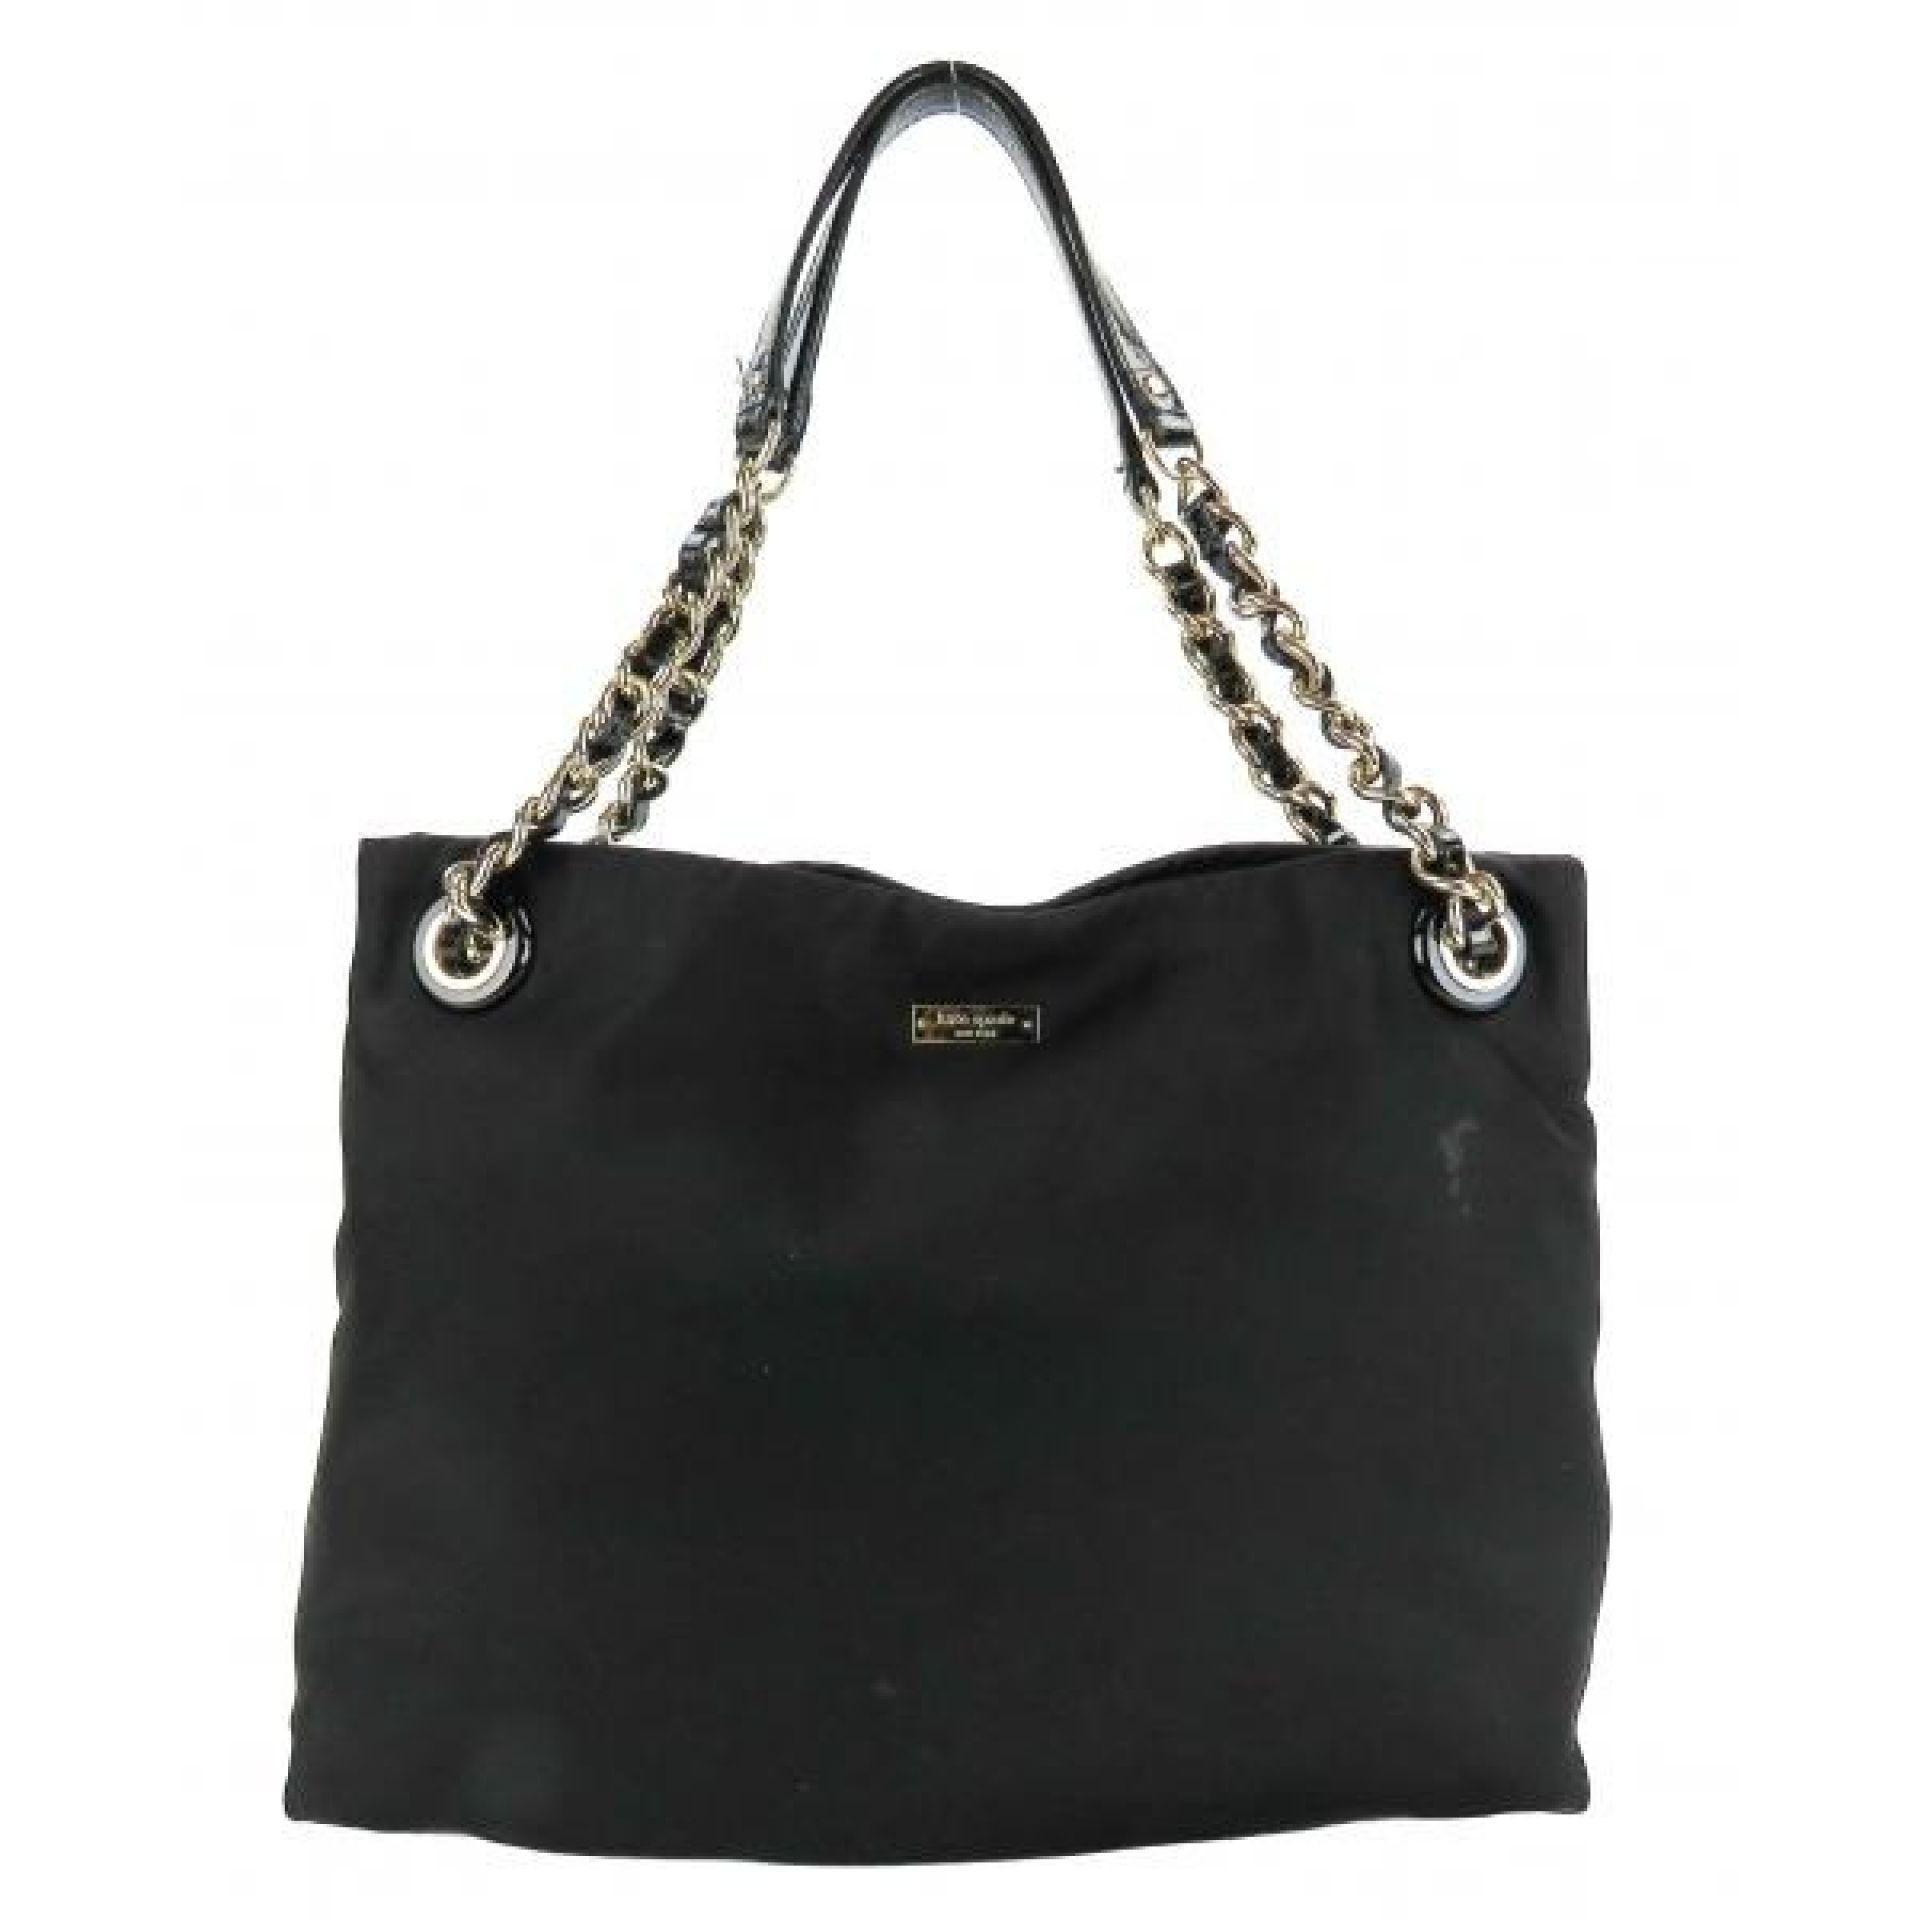 Kate Spade Black Nylon Darya Chain Strap Tote Bag